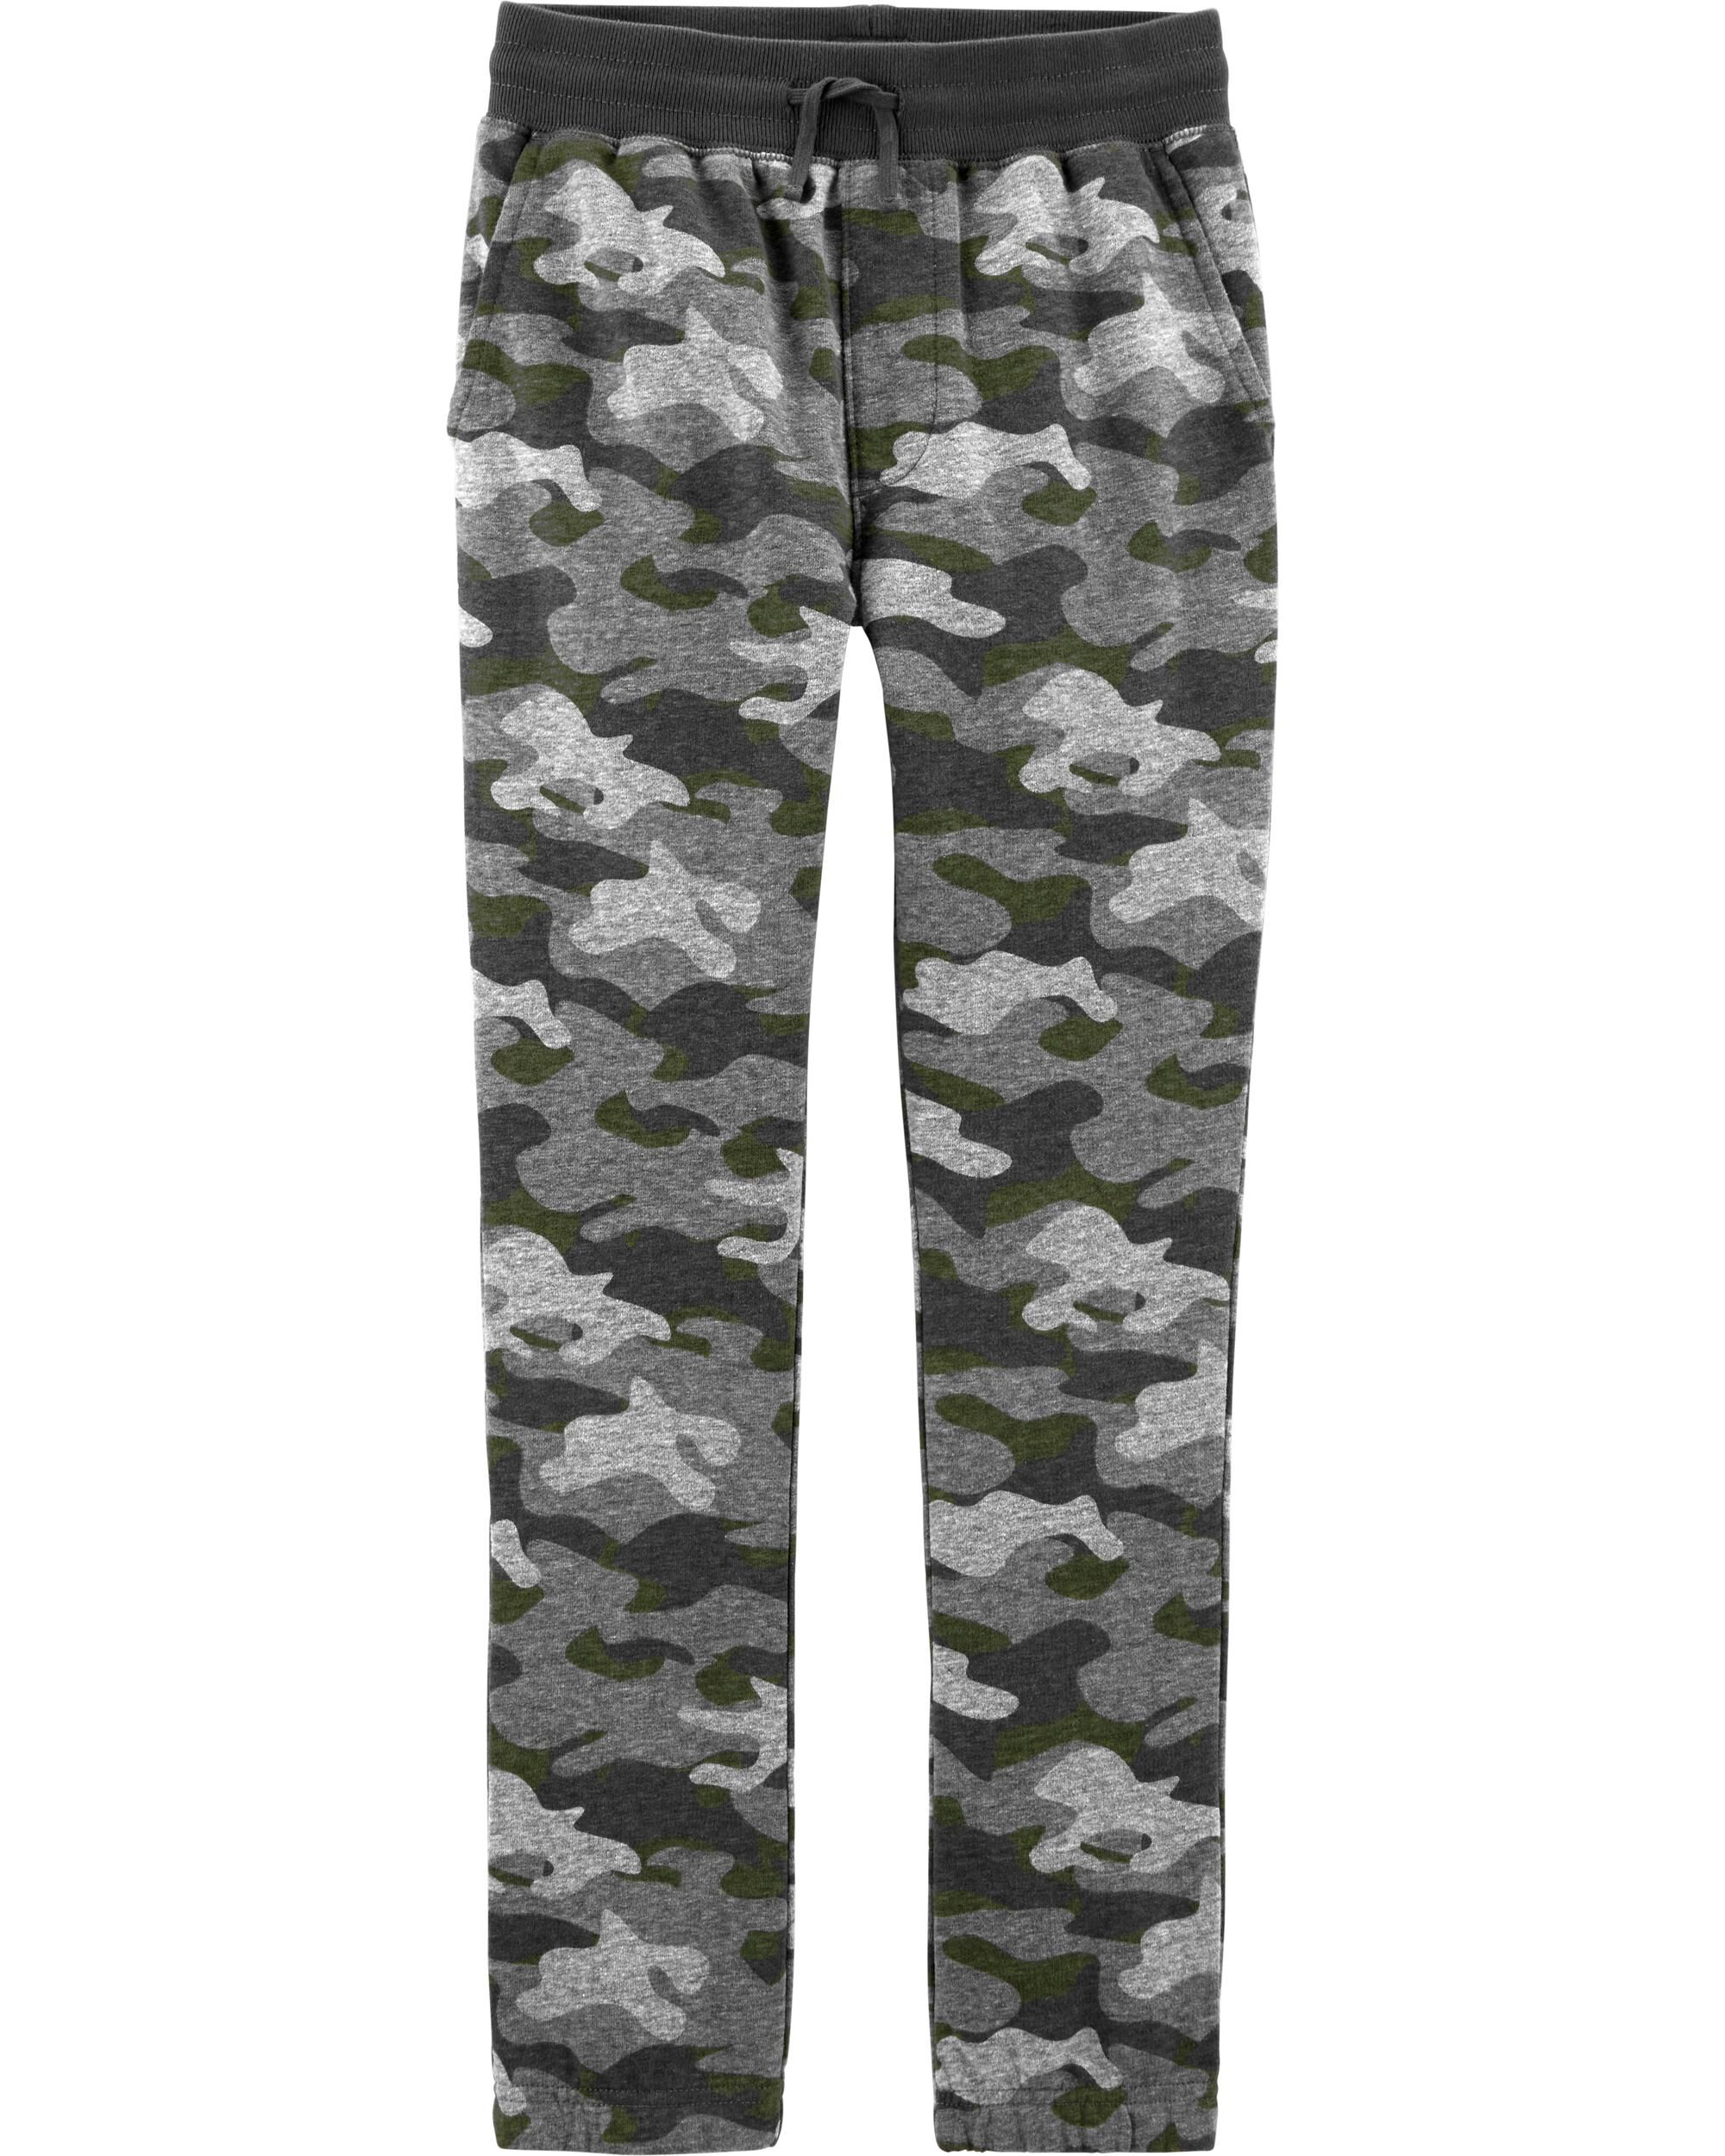 *CLEARANCE* French Terry Camo Joggers